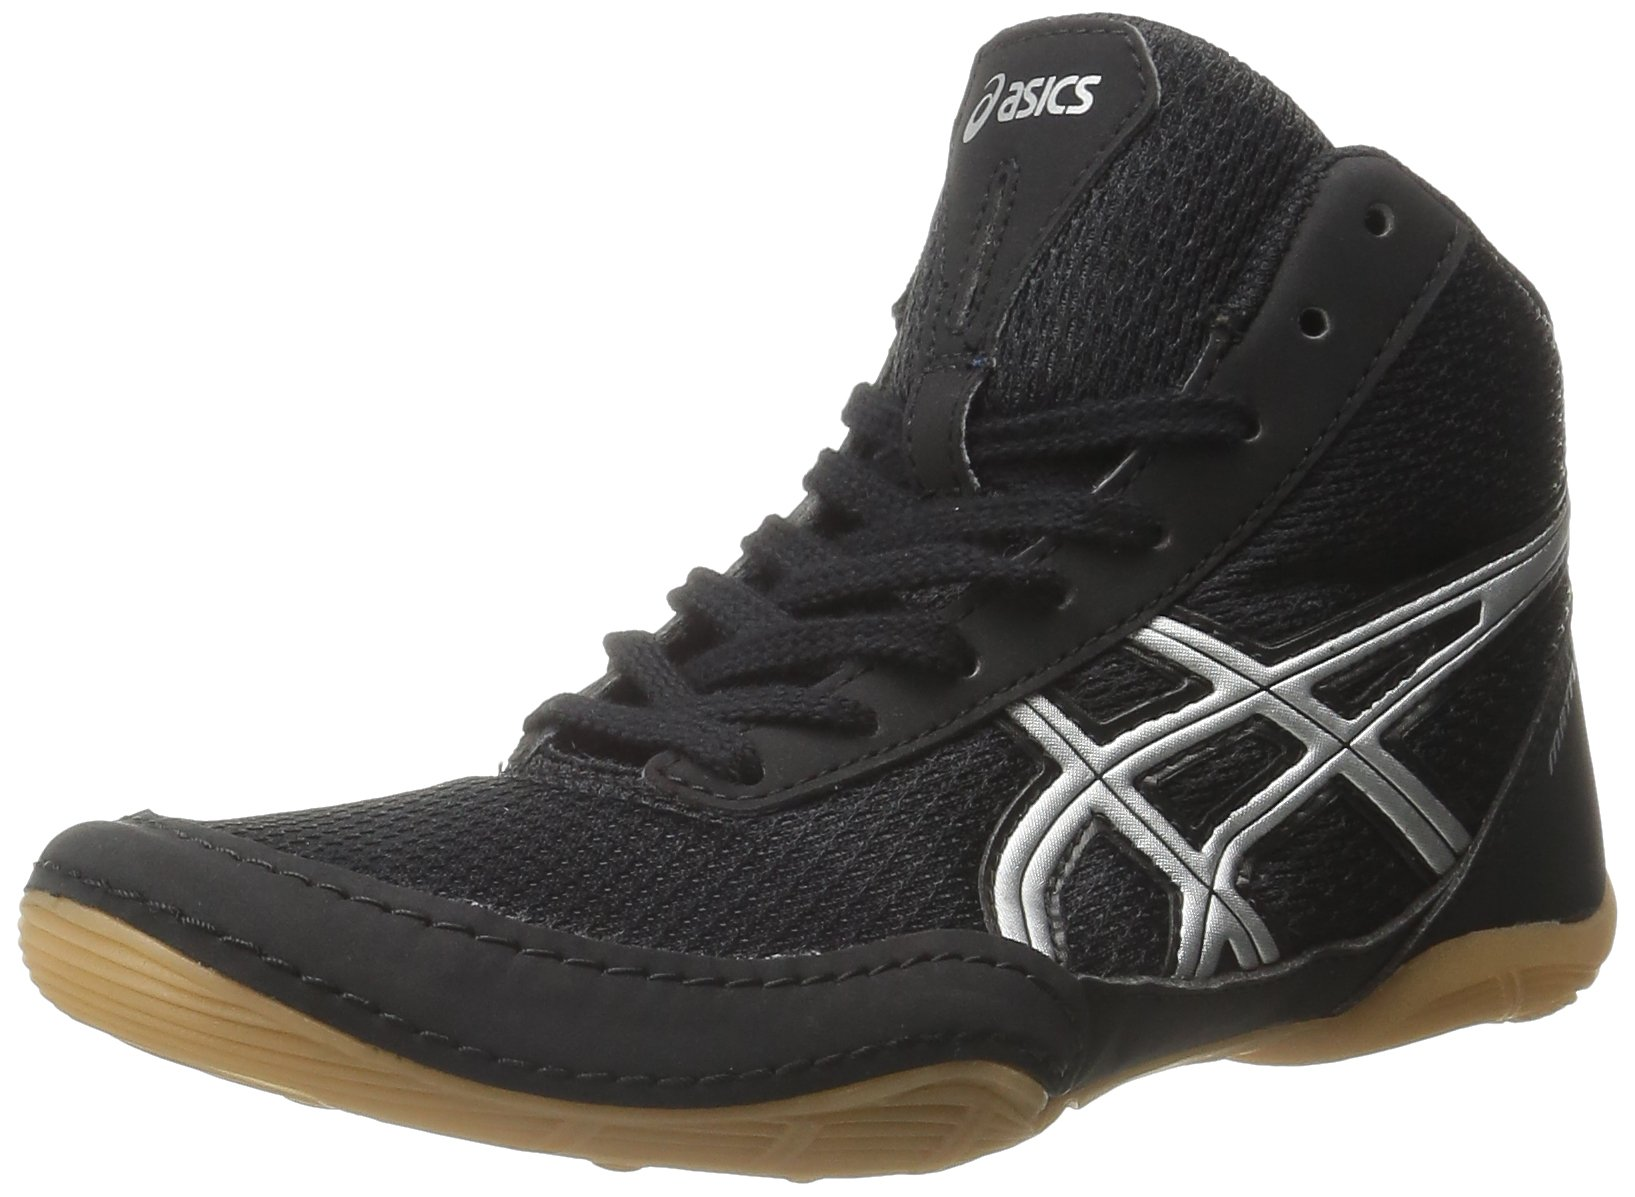 ASICS Matflex 5 GS Wrestling Shoe (Little Kid/Big Kid), Black/Silver, 2.5 M US Little Kid by ASICS